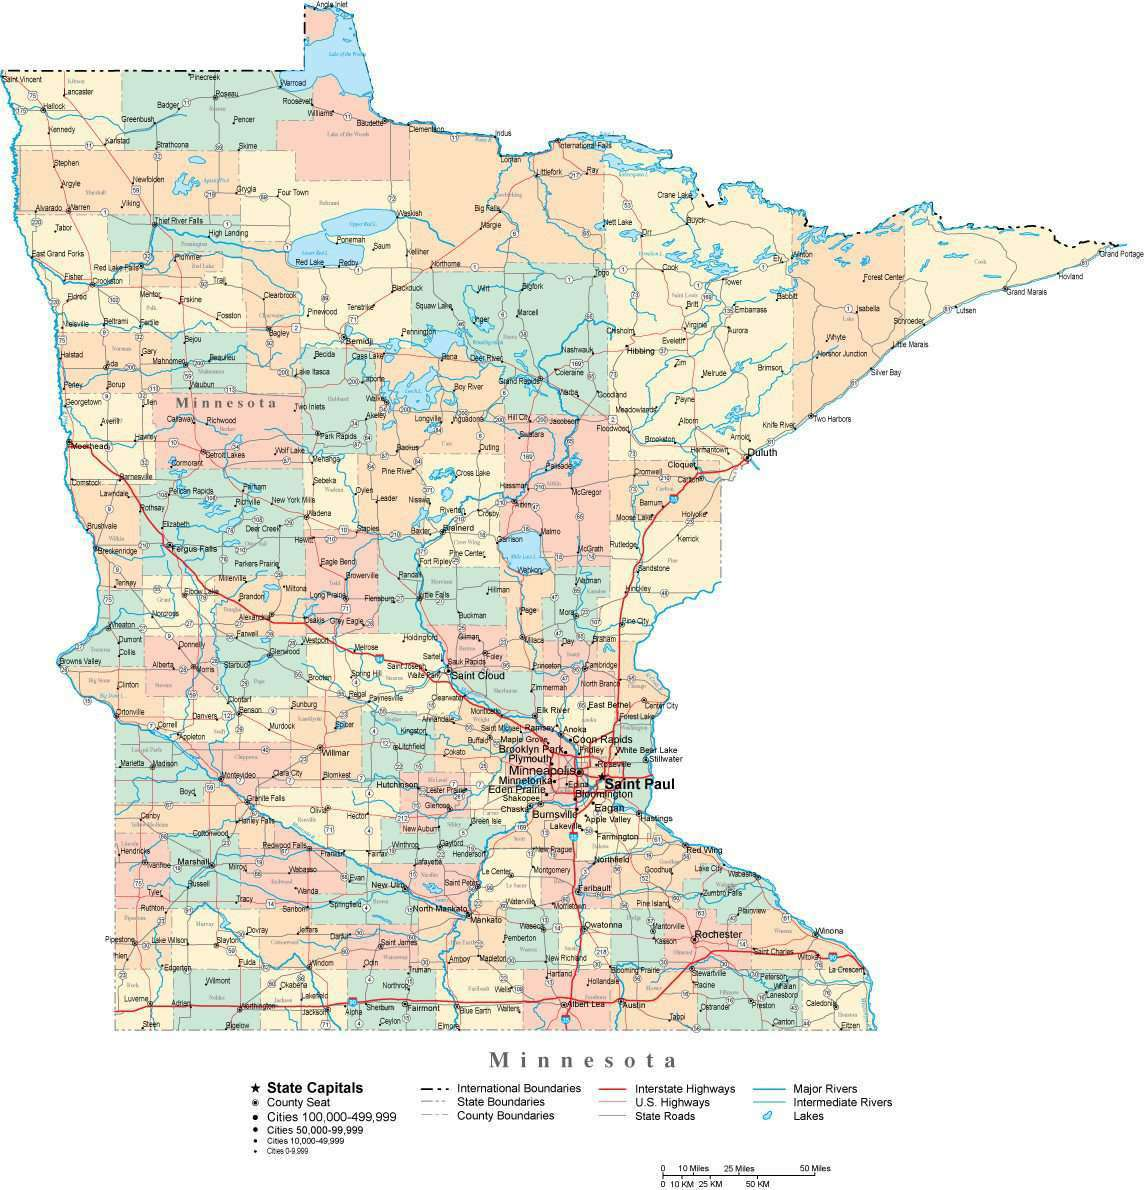 Minnesota State Map - Multi-Color Cut-Out Style - with Counties, Cities,  County Seats, Major Roads, Rivers and Lakes